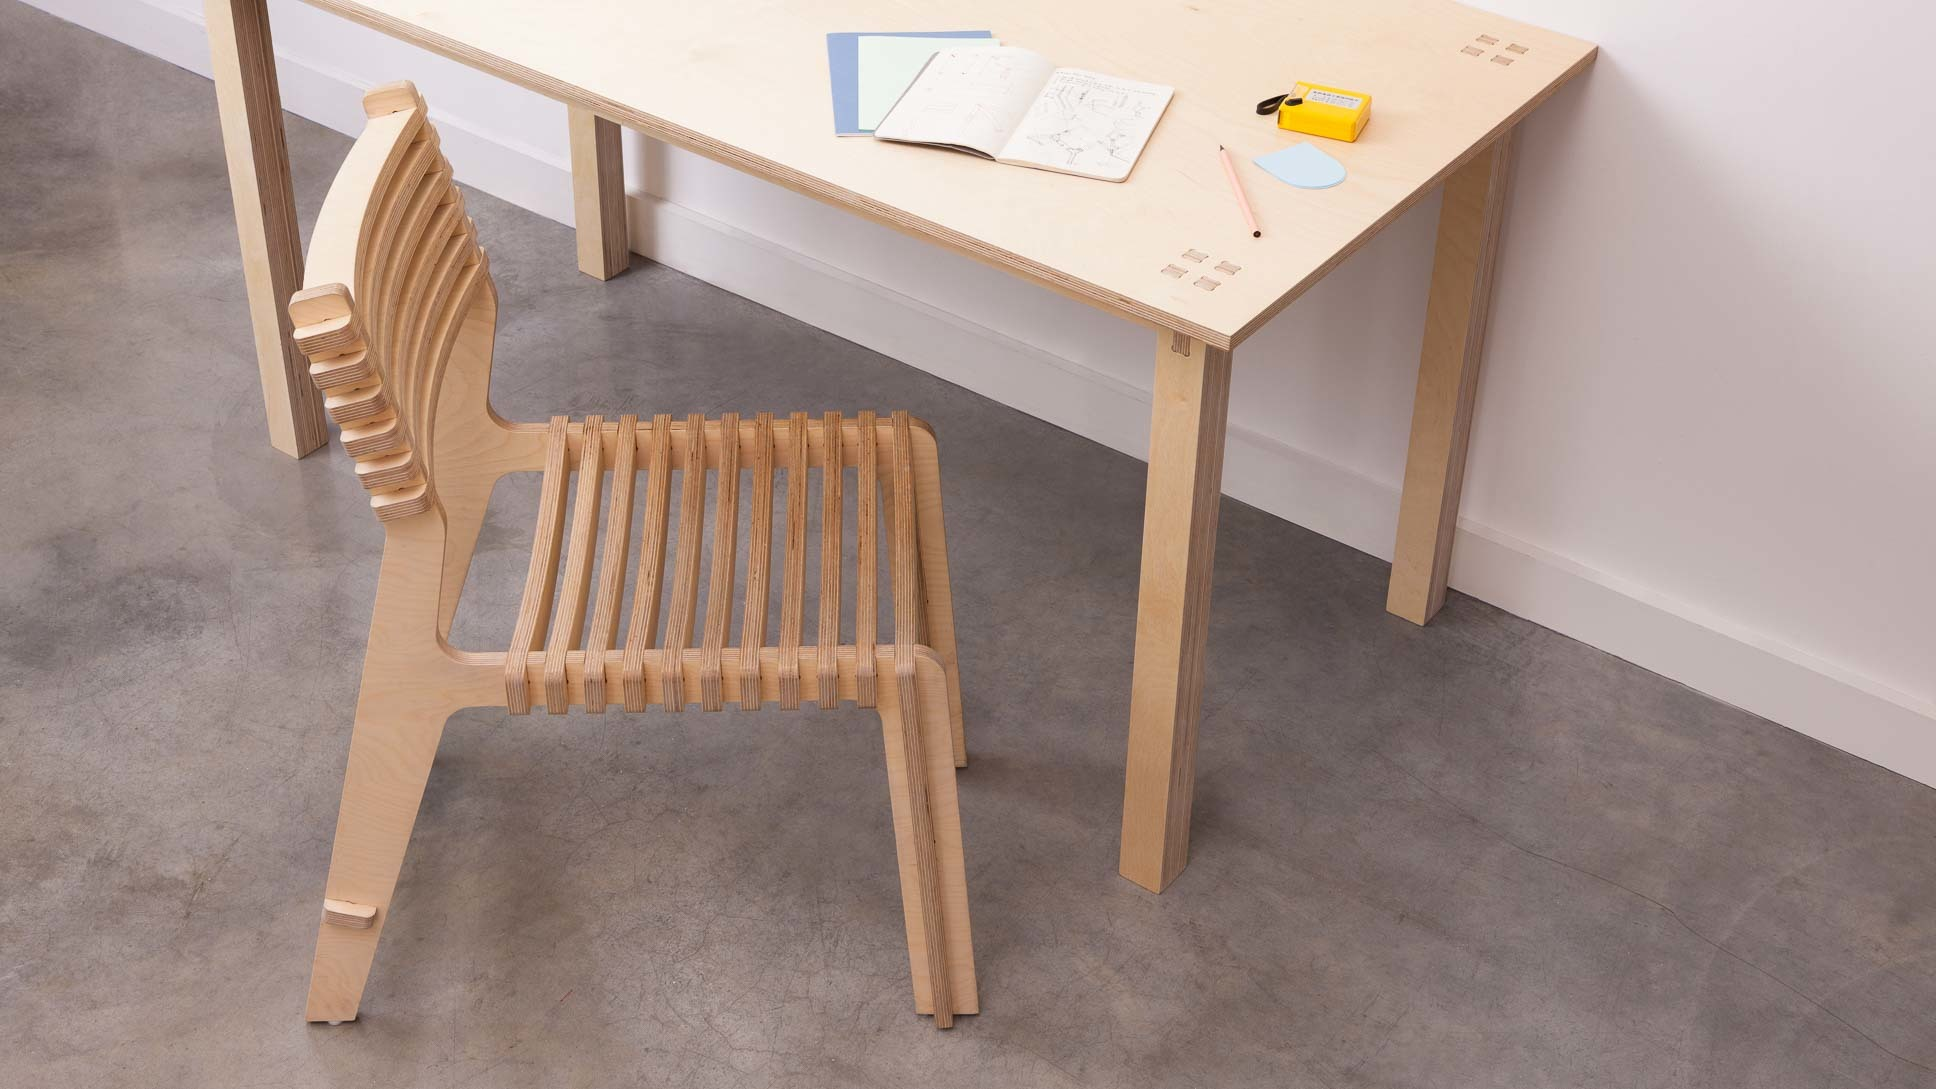 Chaise en bois design et ecologique made in france opendesk